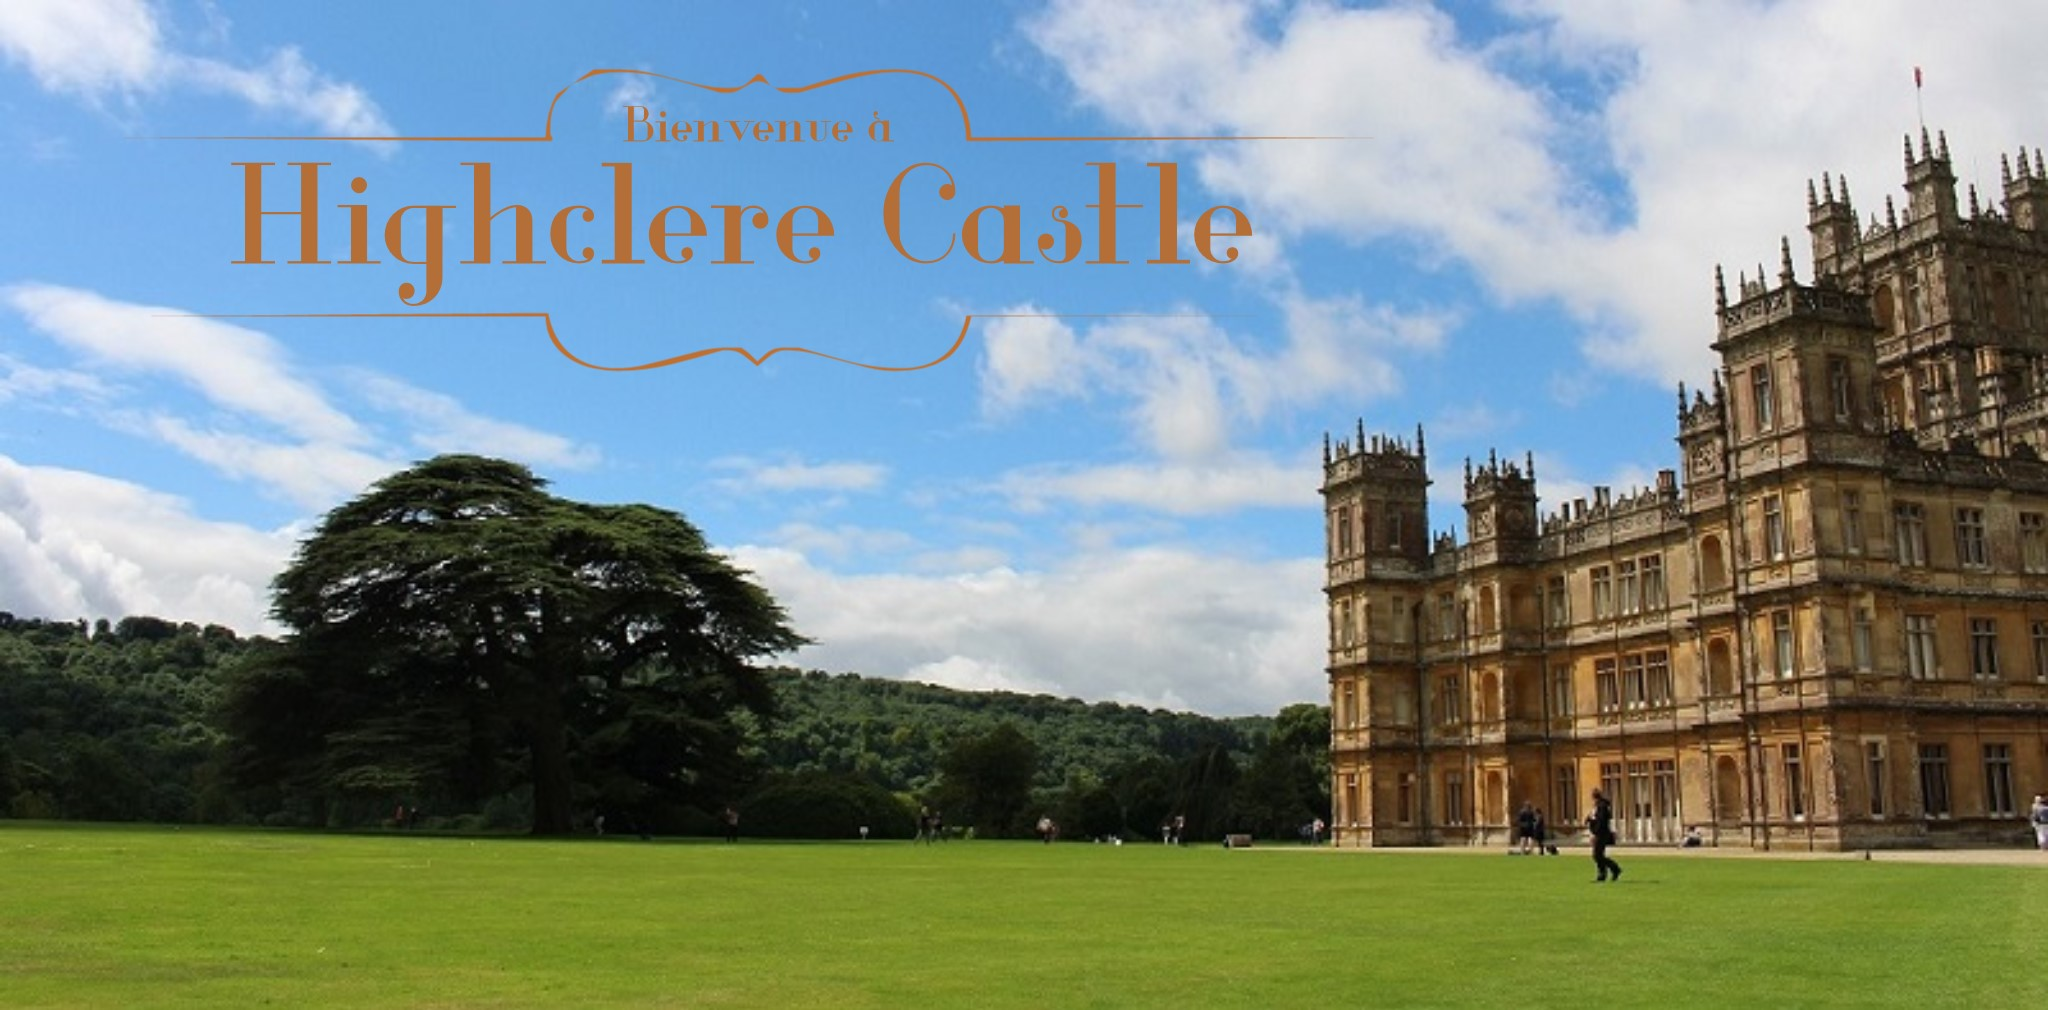 Highclere castle le ch teau de downton abbey globe trottine - Chateau de downton abbey ...